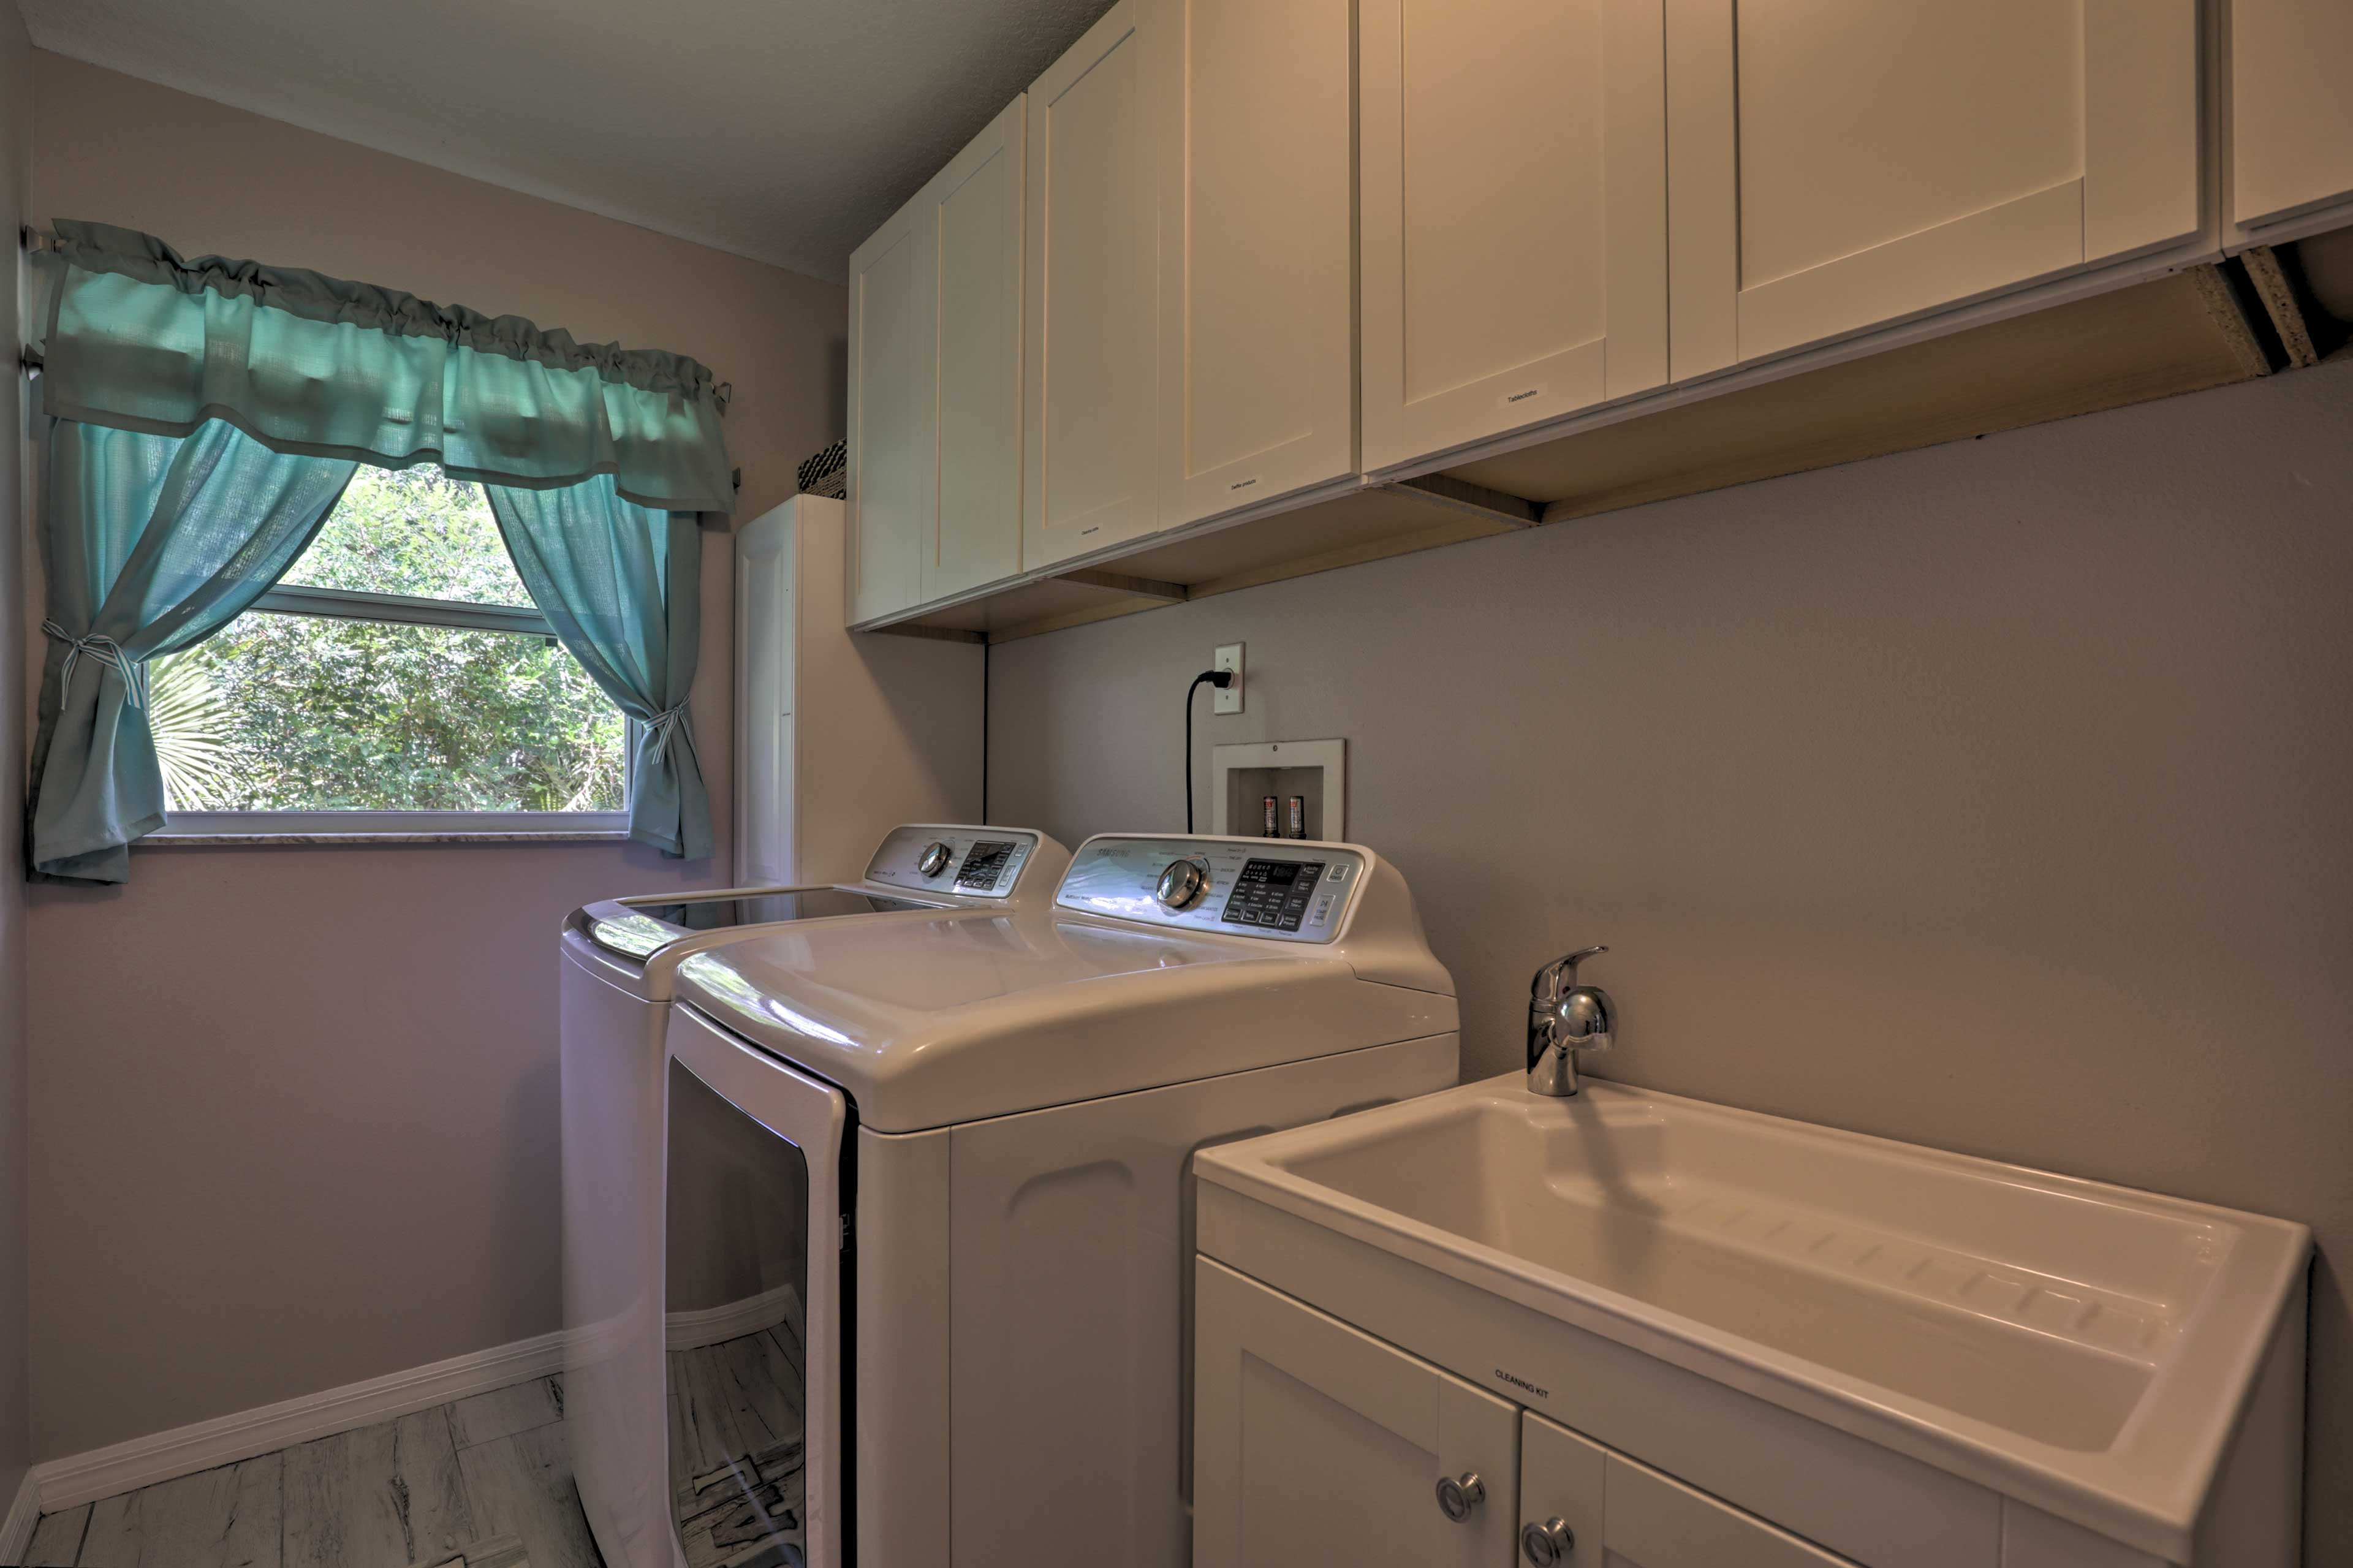 Keep all your clothes fresh and clean with the home's washer and dryer.